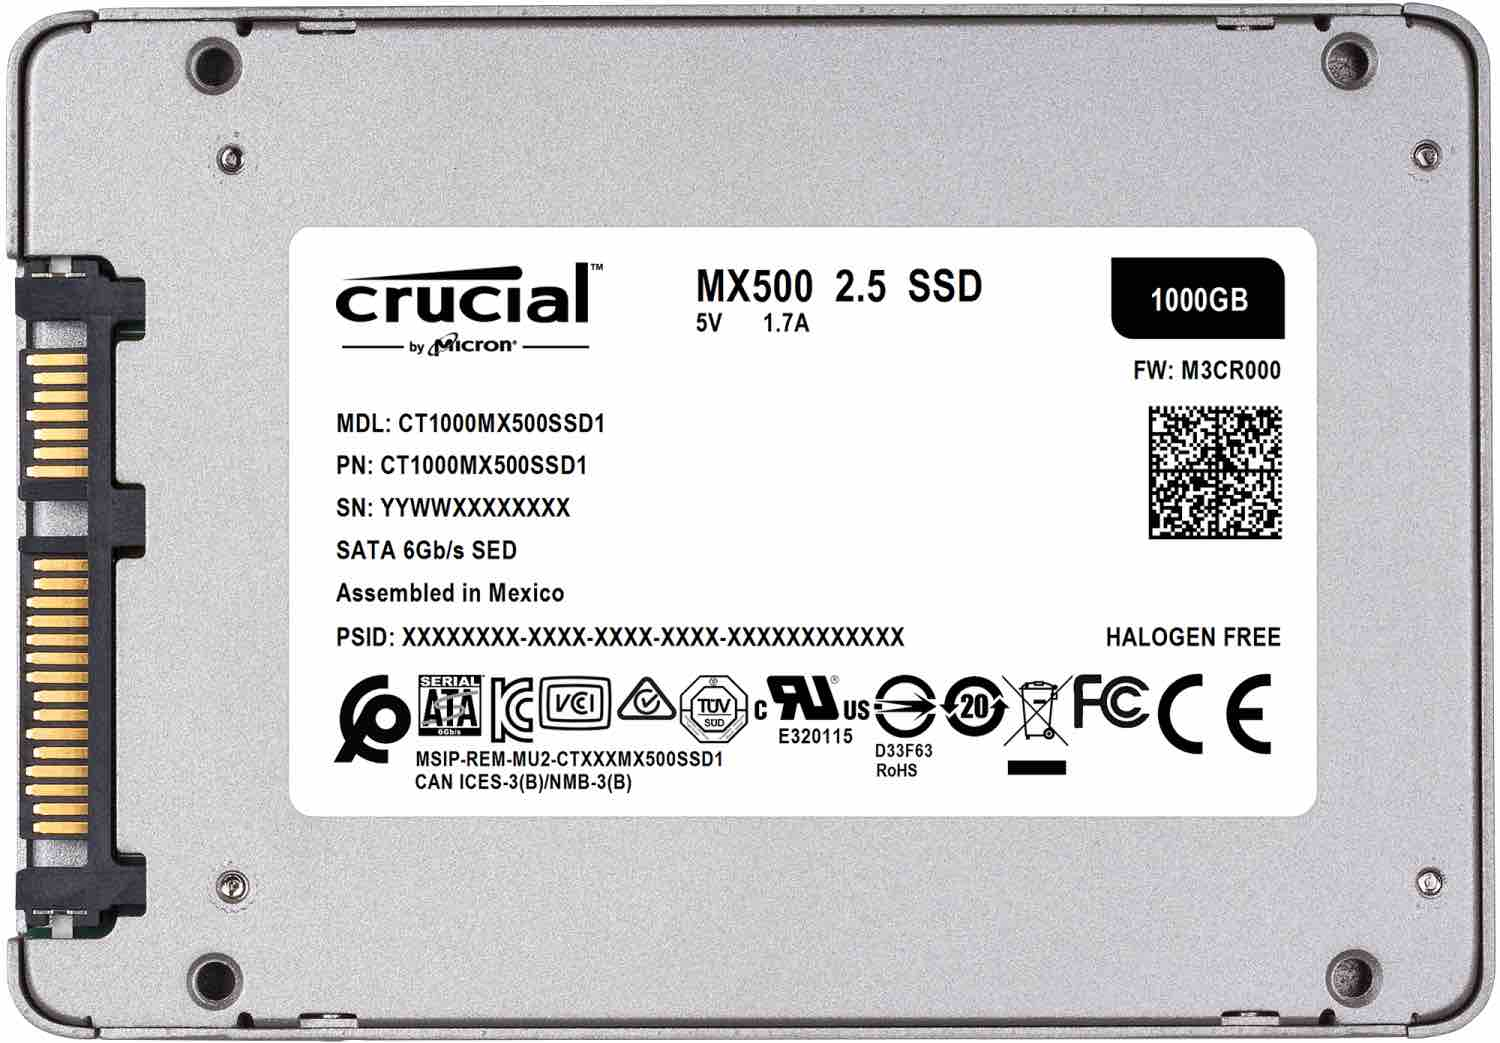 cq5dam.web_.1500.1500c Crucial Launches The MX500 SSD At CES 2018